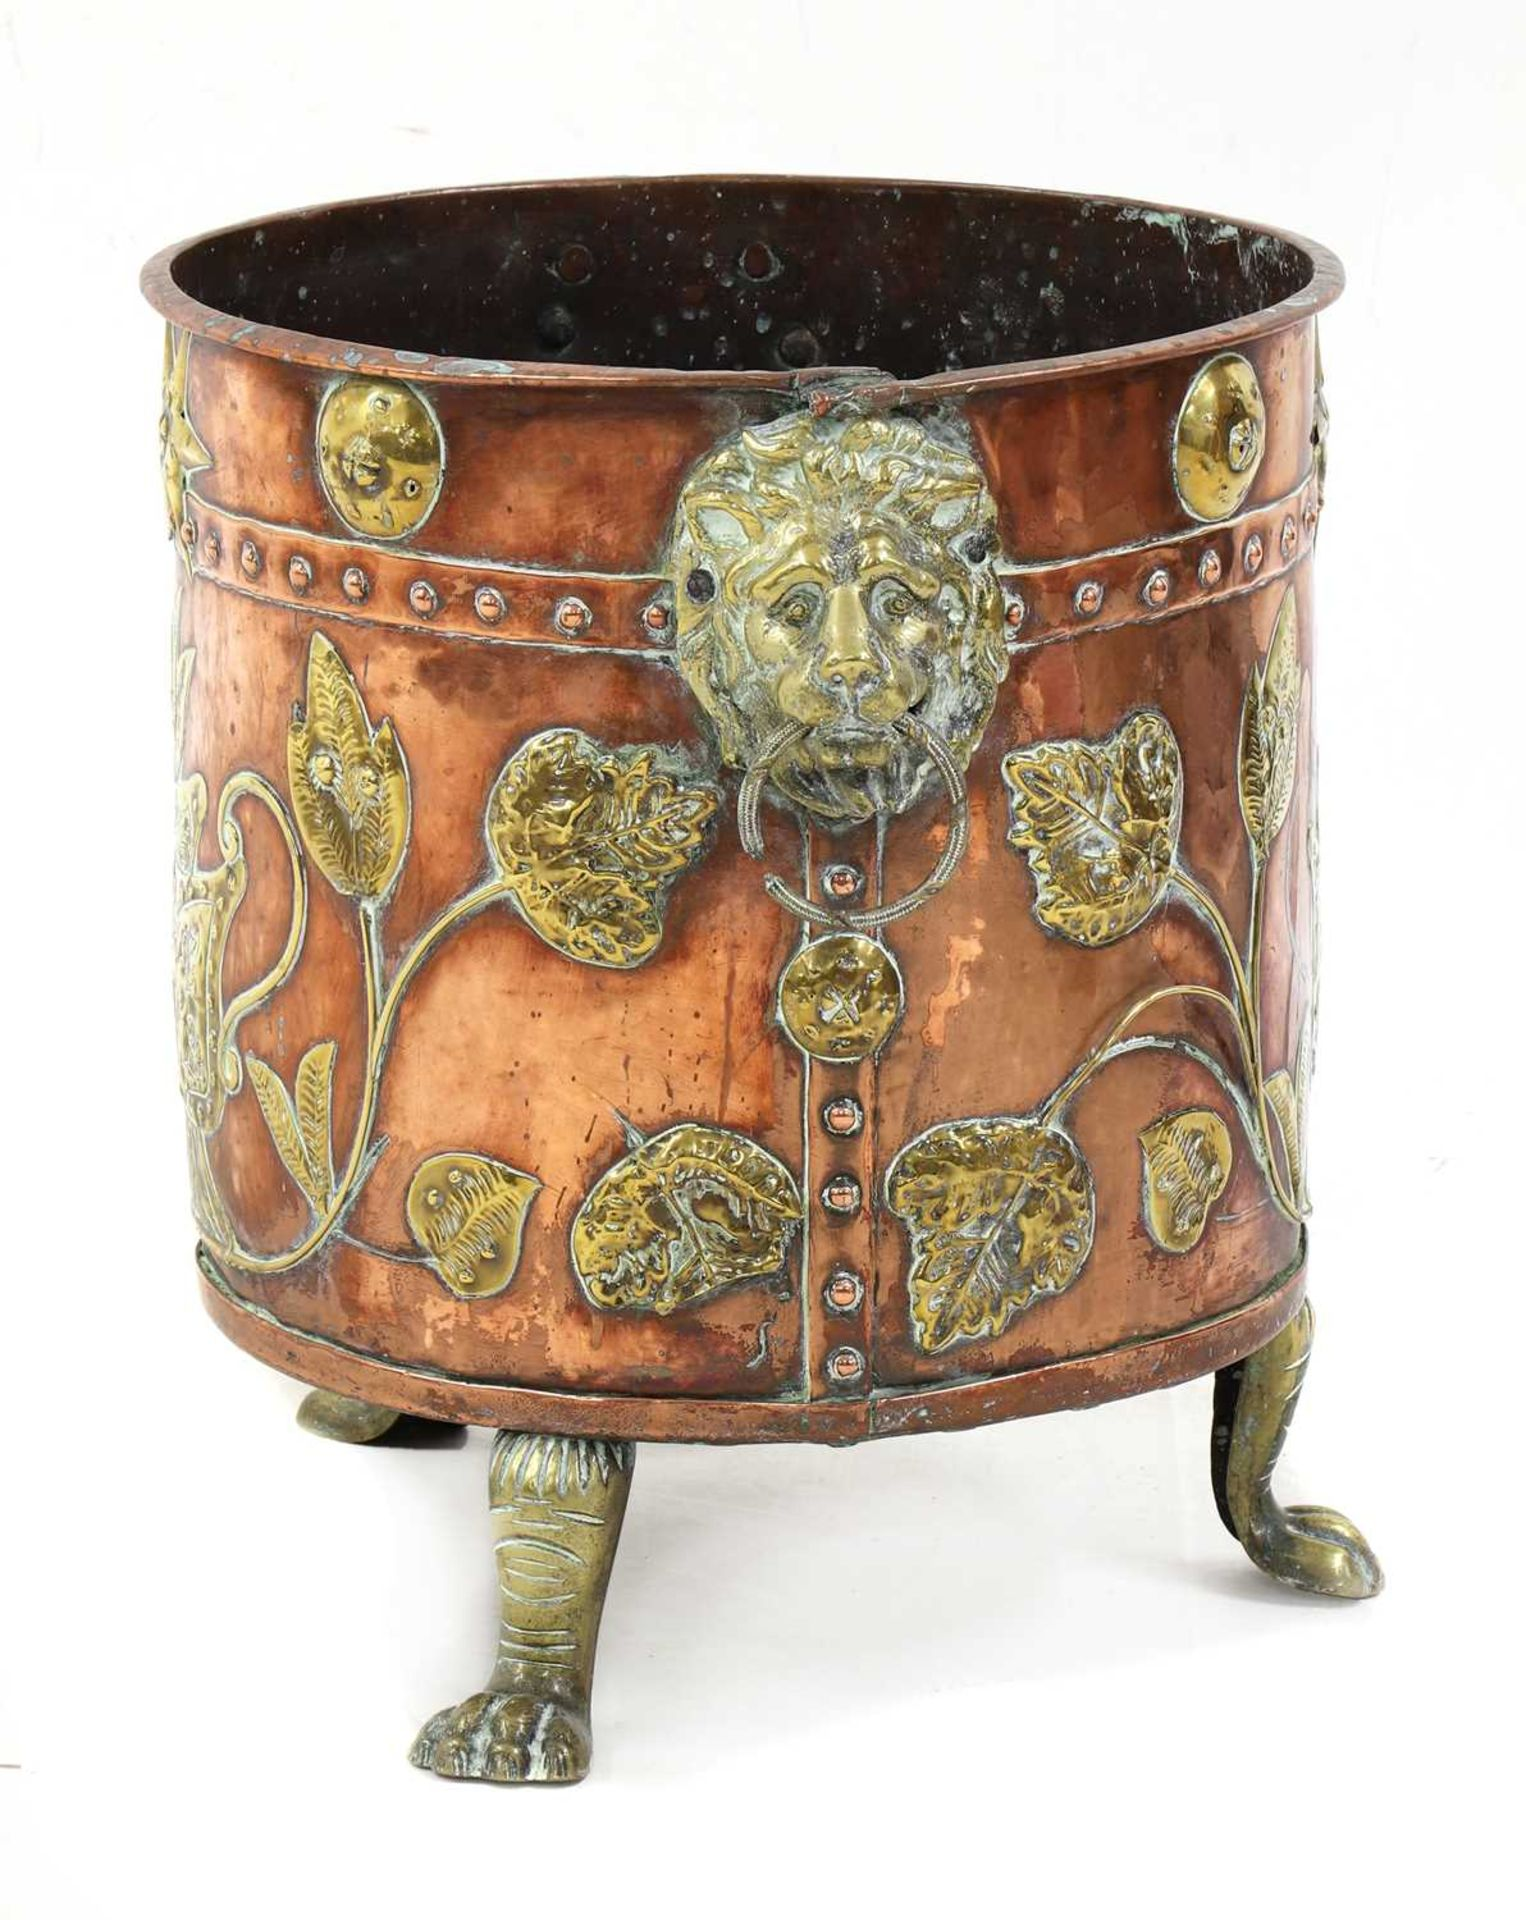 A copper and brass coal bucket, - Image 4 of 5